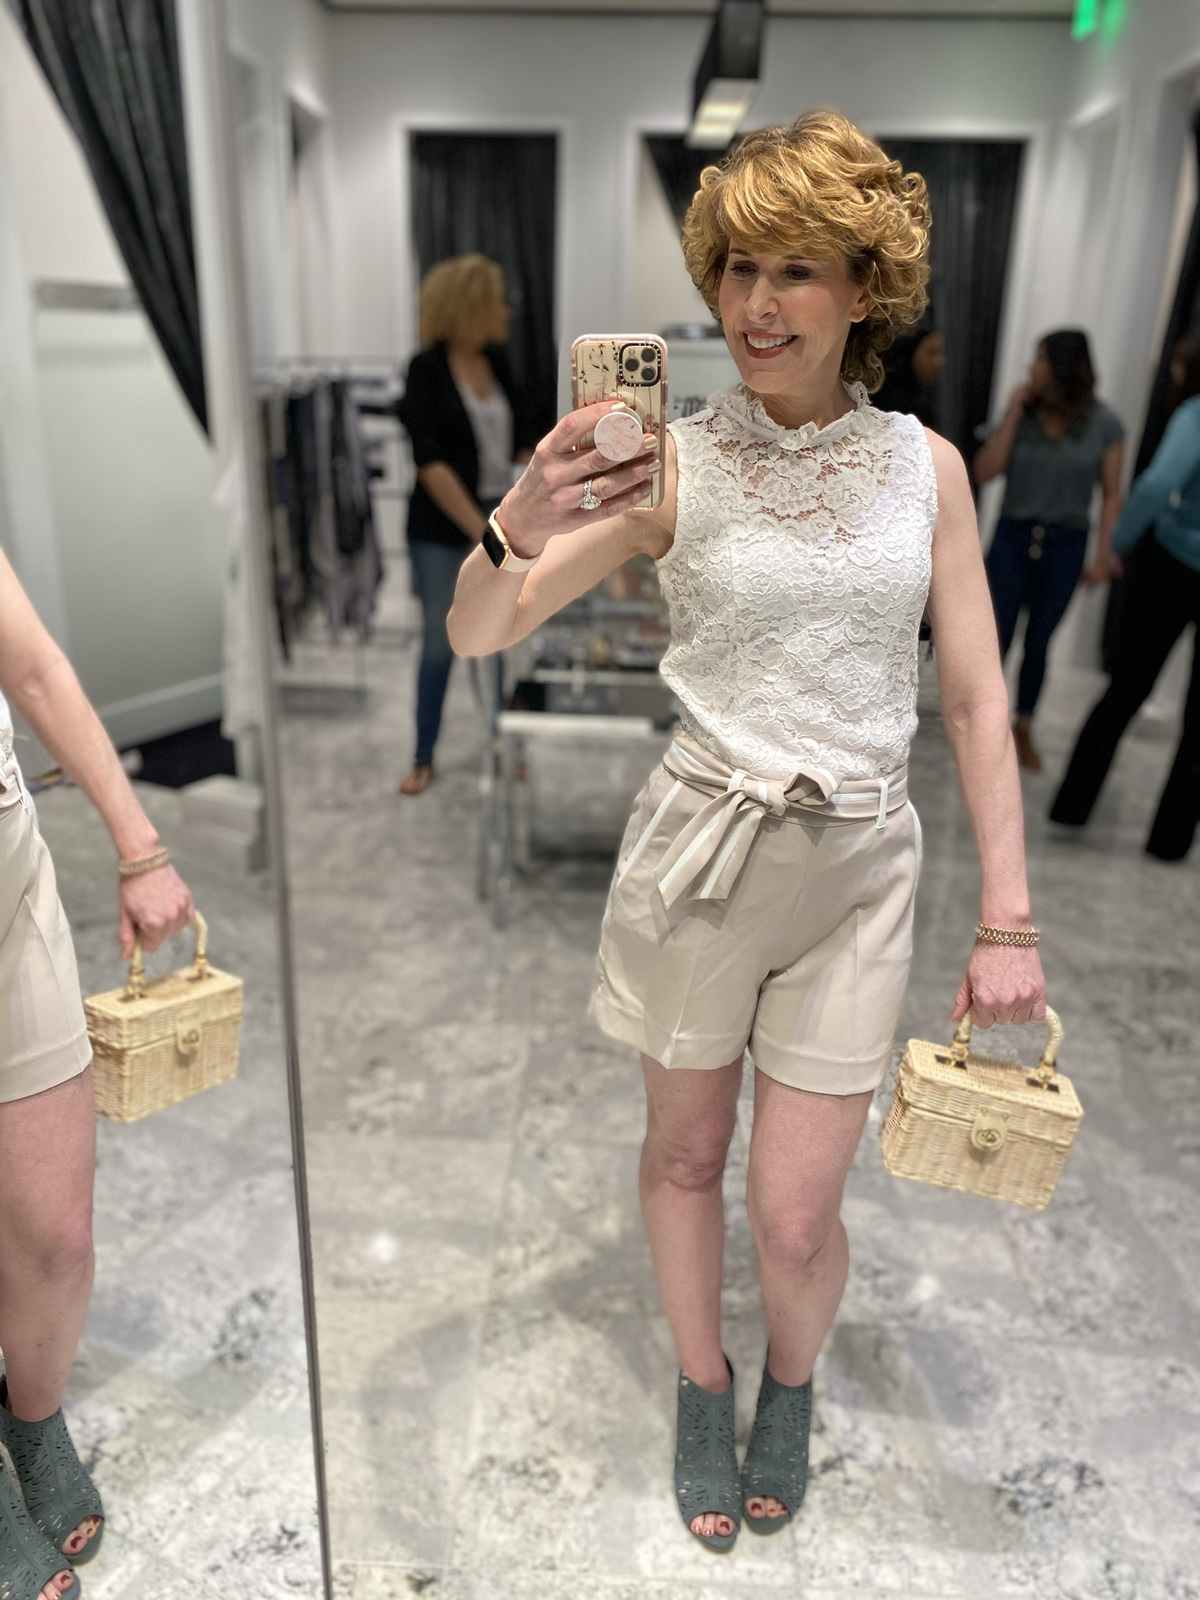 Mirror selfie of woman over 50 wearing white lace high neck top khaki shorts with white trim green shooties carrying wicker handbag doing spring wardrobe update